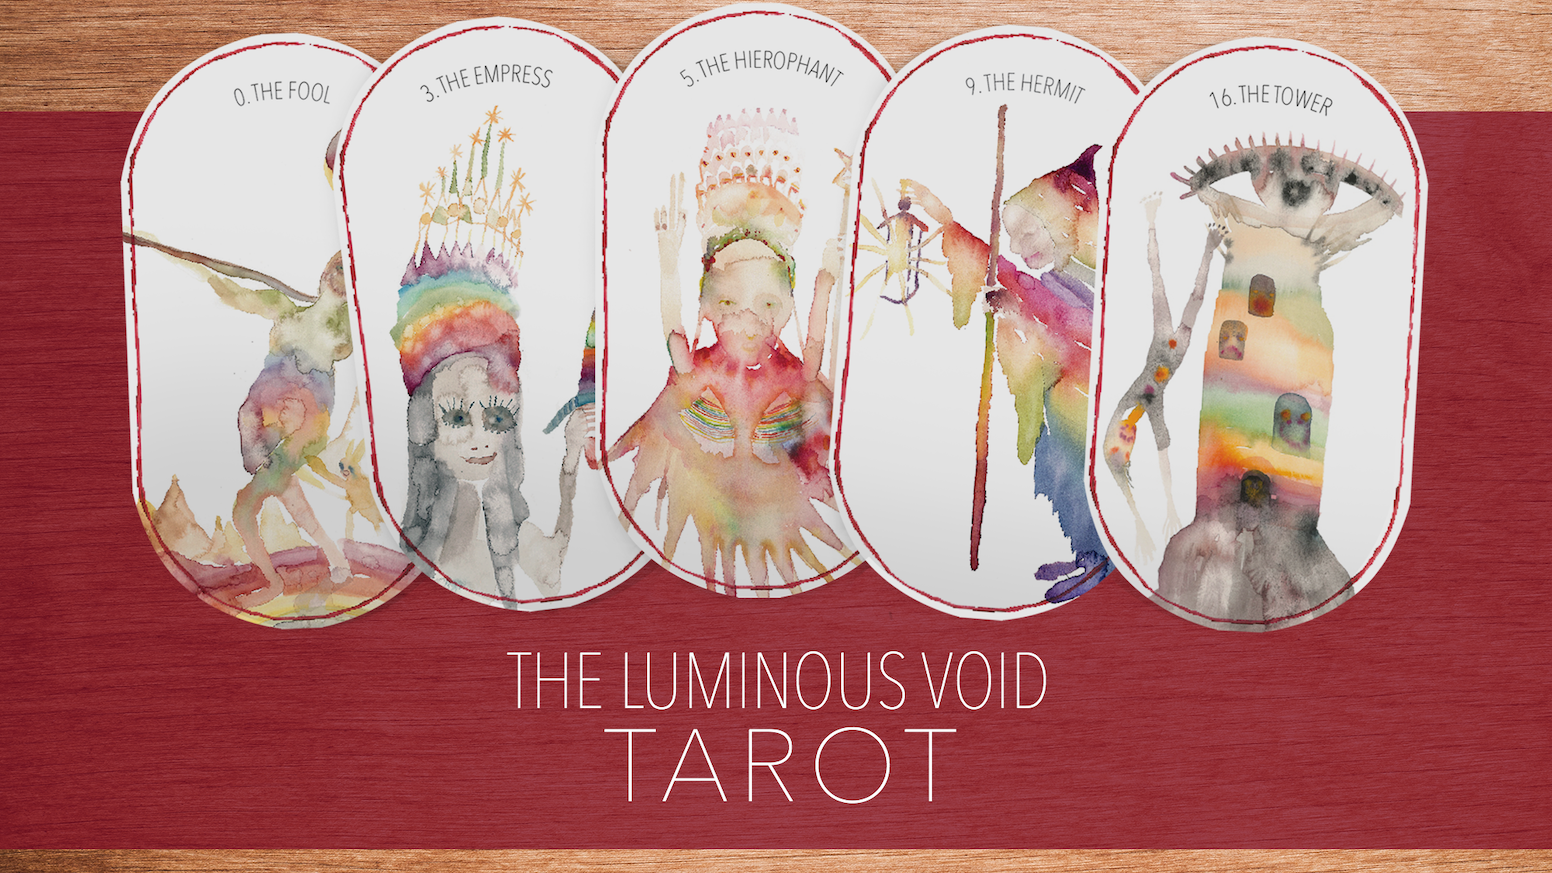 THE LUMINOUS VOID TAROT HAS BEEN FUNDED. You can pre-order order from the button below or find us here: www.theluminousvoid.com